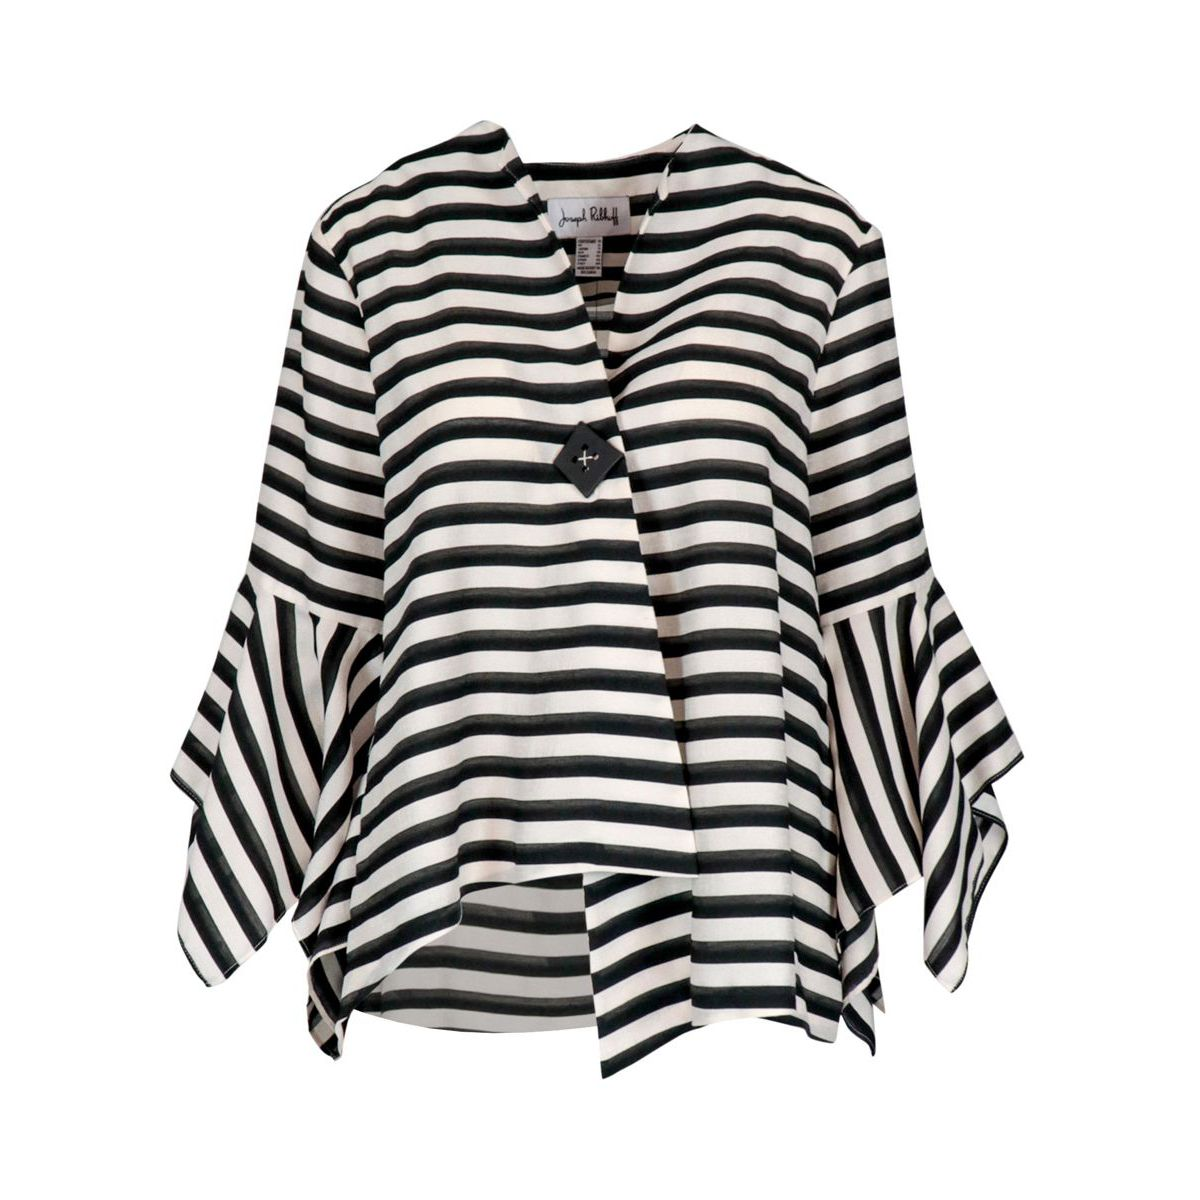 Wide crepe jacket with striped pattern and button White black Joseph Ribkoff